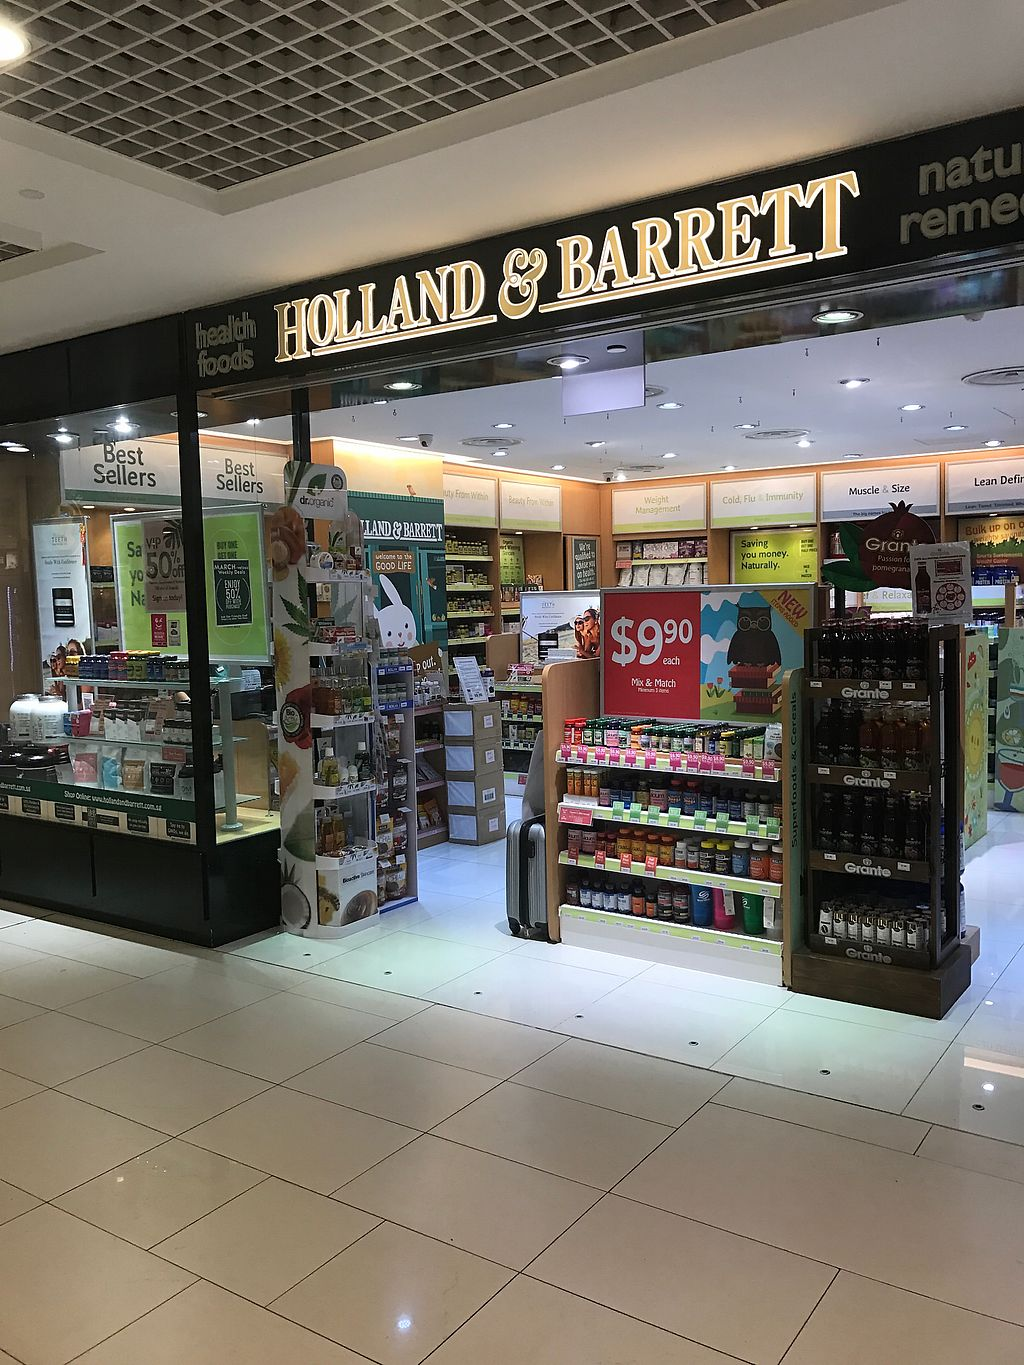 """Photo of Holland & Barrett - Parkway  by <a href=""""/members/profile/kkylaye"""">kkylaye</a> <br/>store front <br/> March 31, 2018  - <a href='/contact/abuse/image/113977/378727'>Report</a>"""